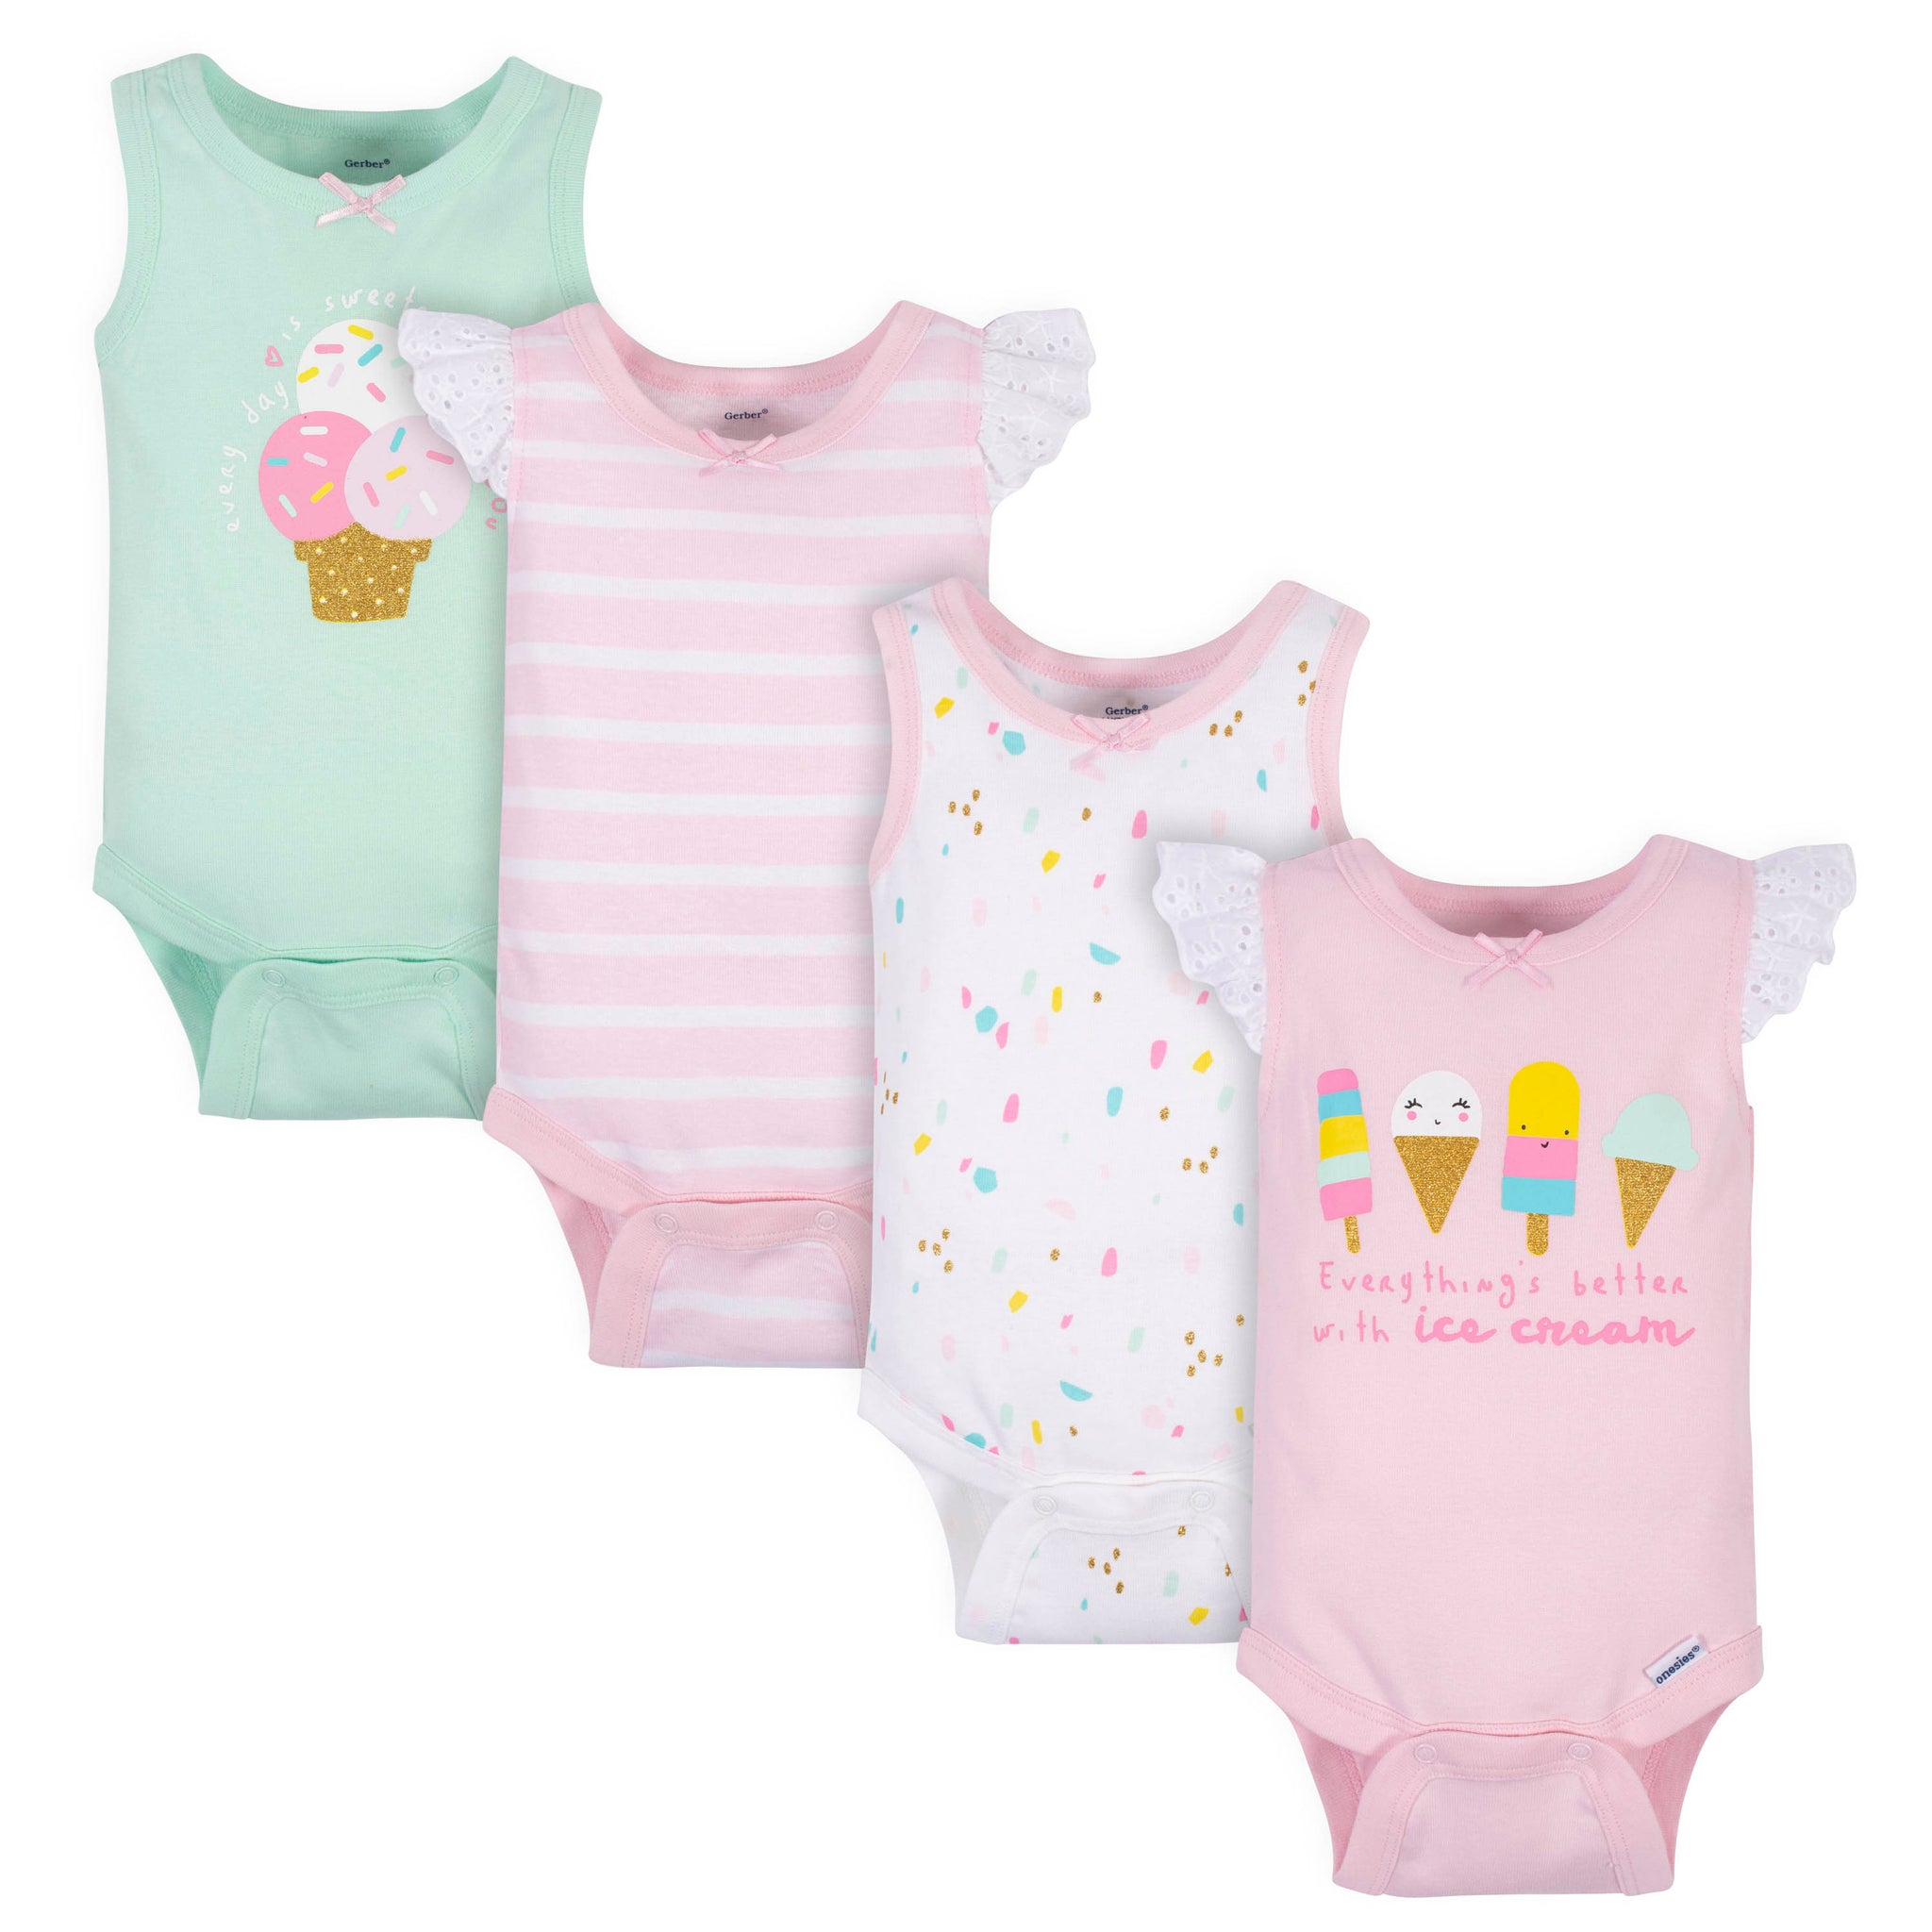 4-Pack Baby Girls Ice Cream Onesies® Bodysuits-Gerber Childrenswear Wholesale